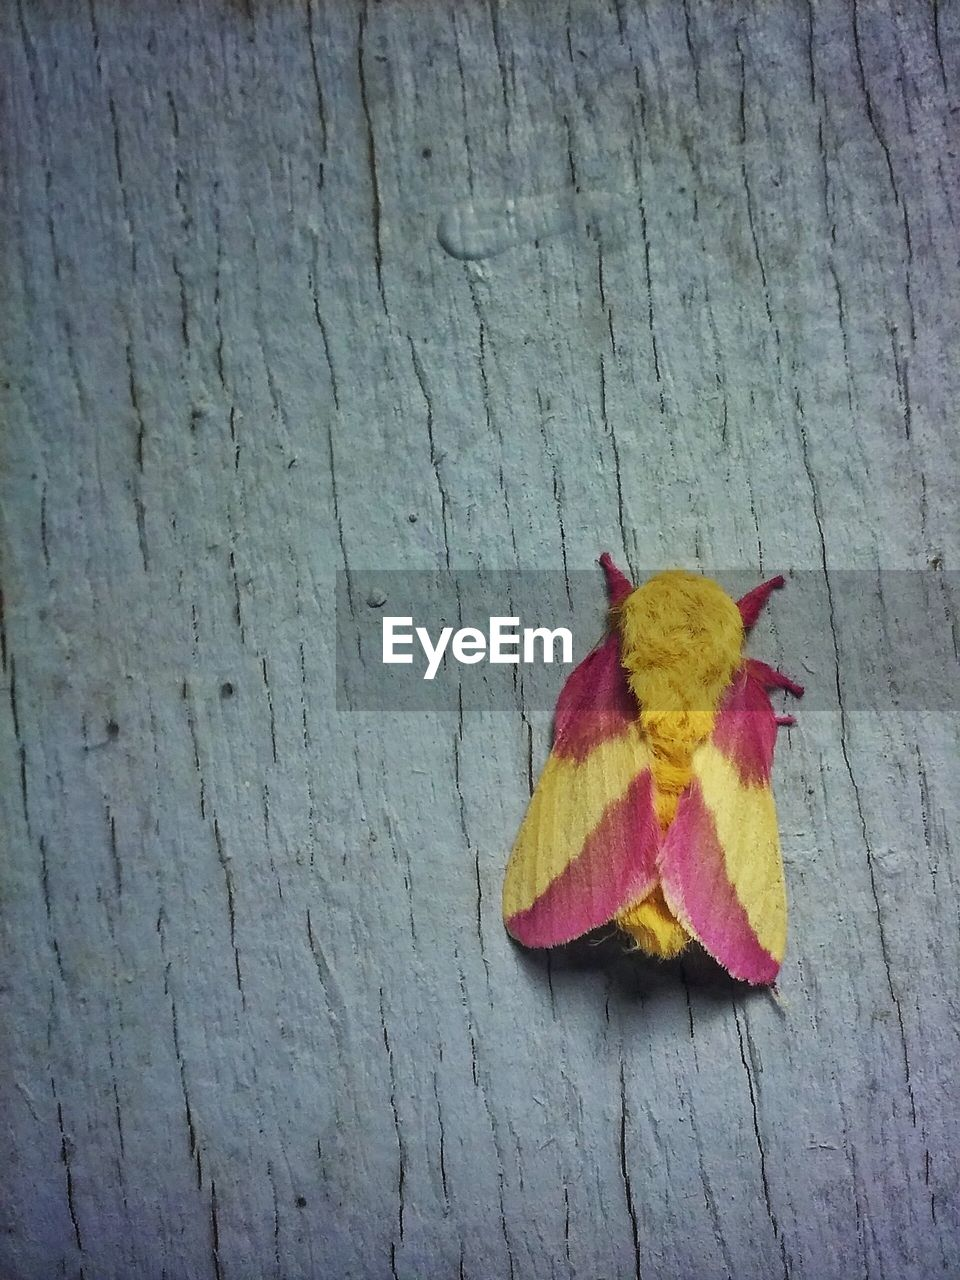 Close-Up Of Pink And Yellow Moth On Wooden Plank